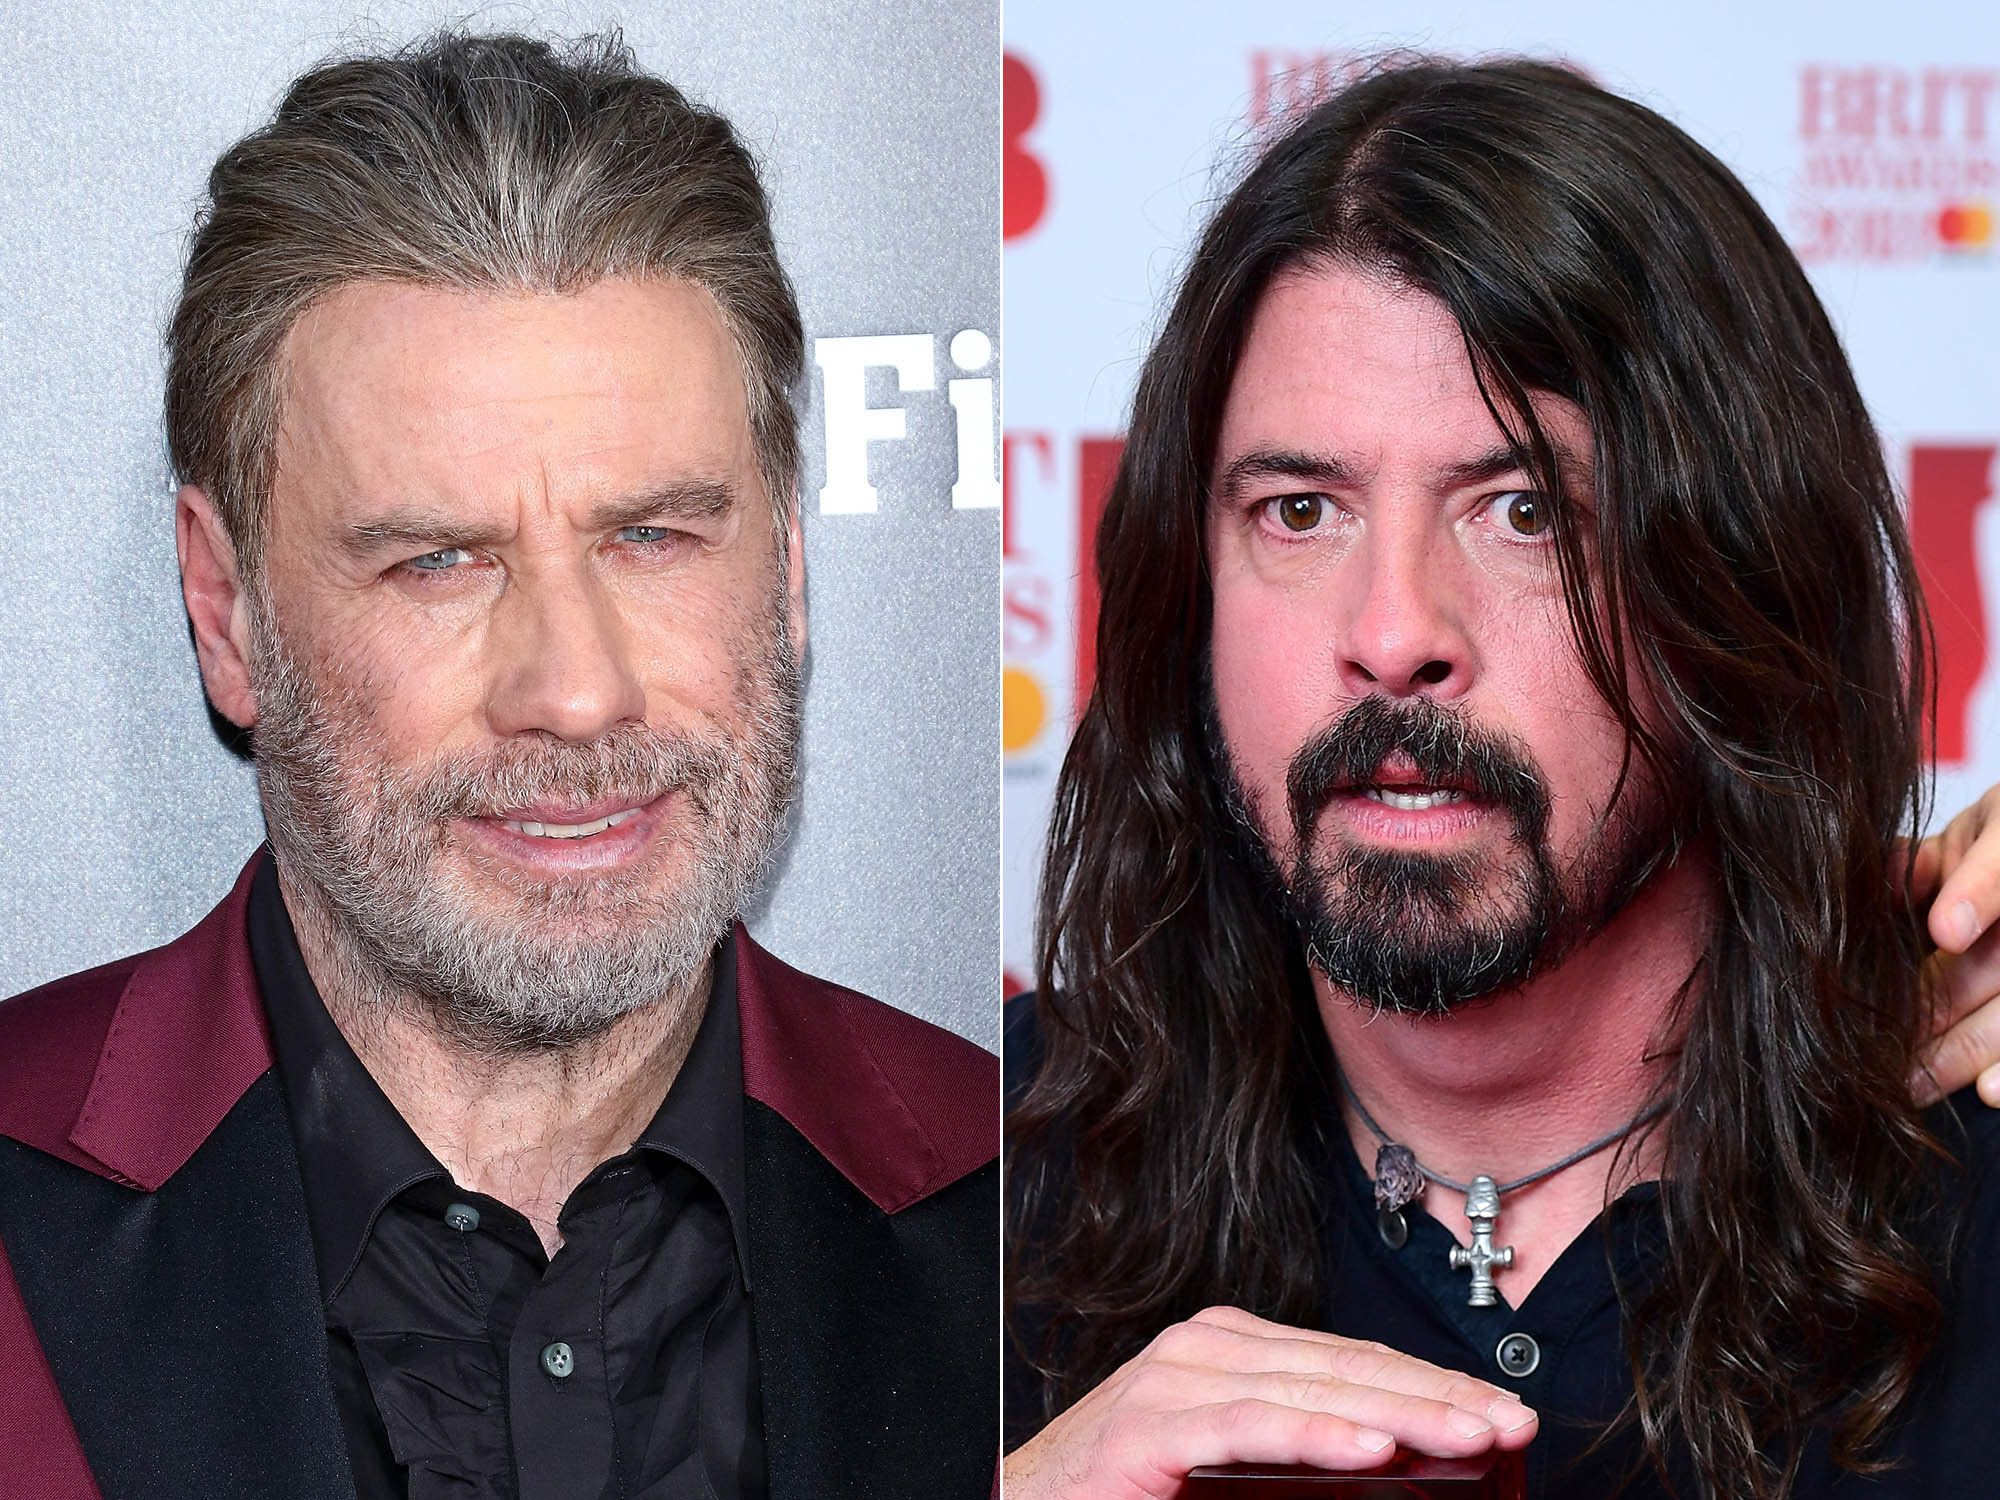 John Travolta briefly sang with Dave Grohl on Saturday night.